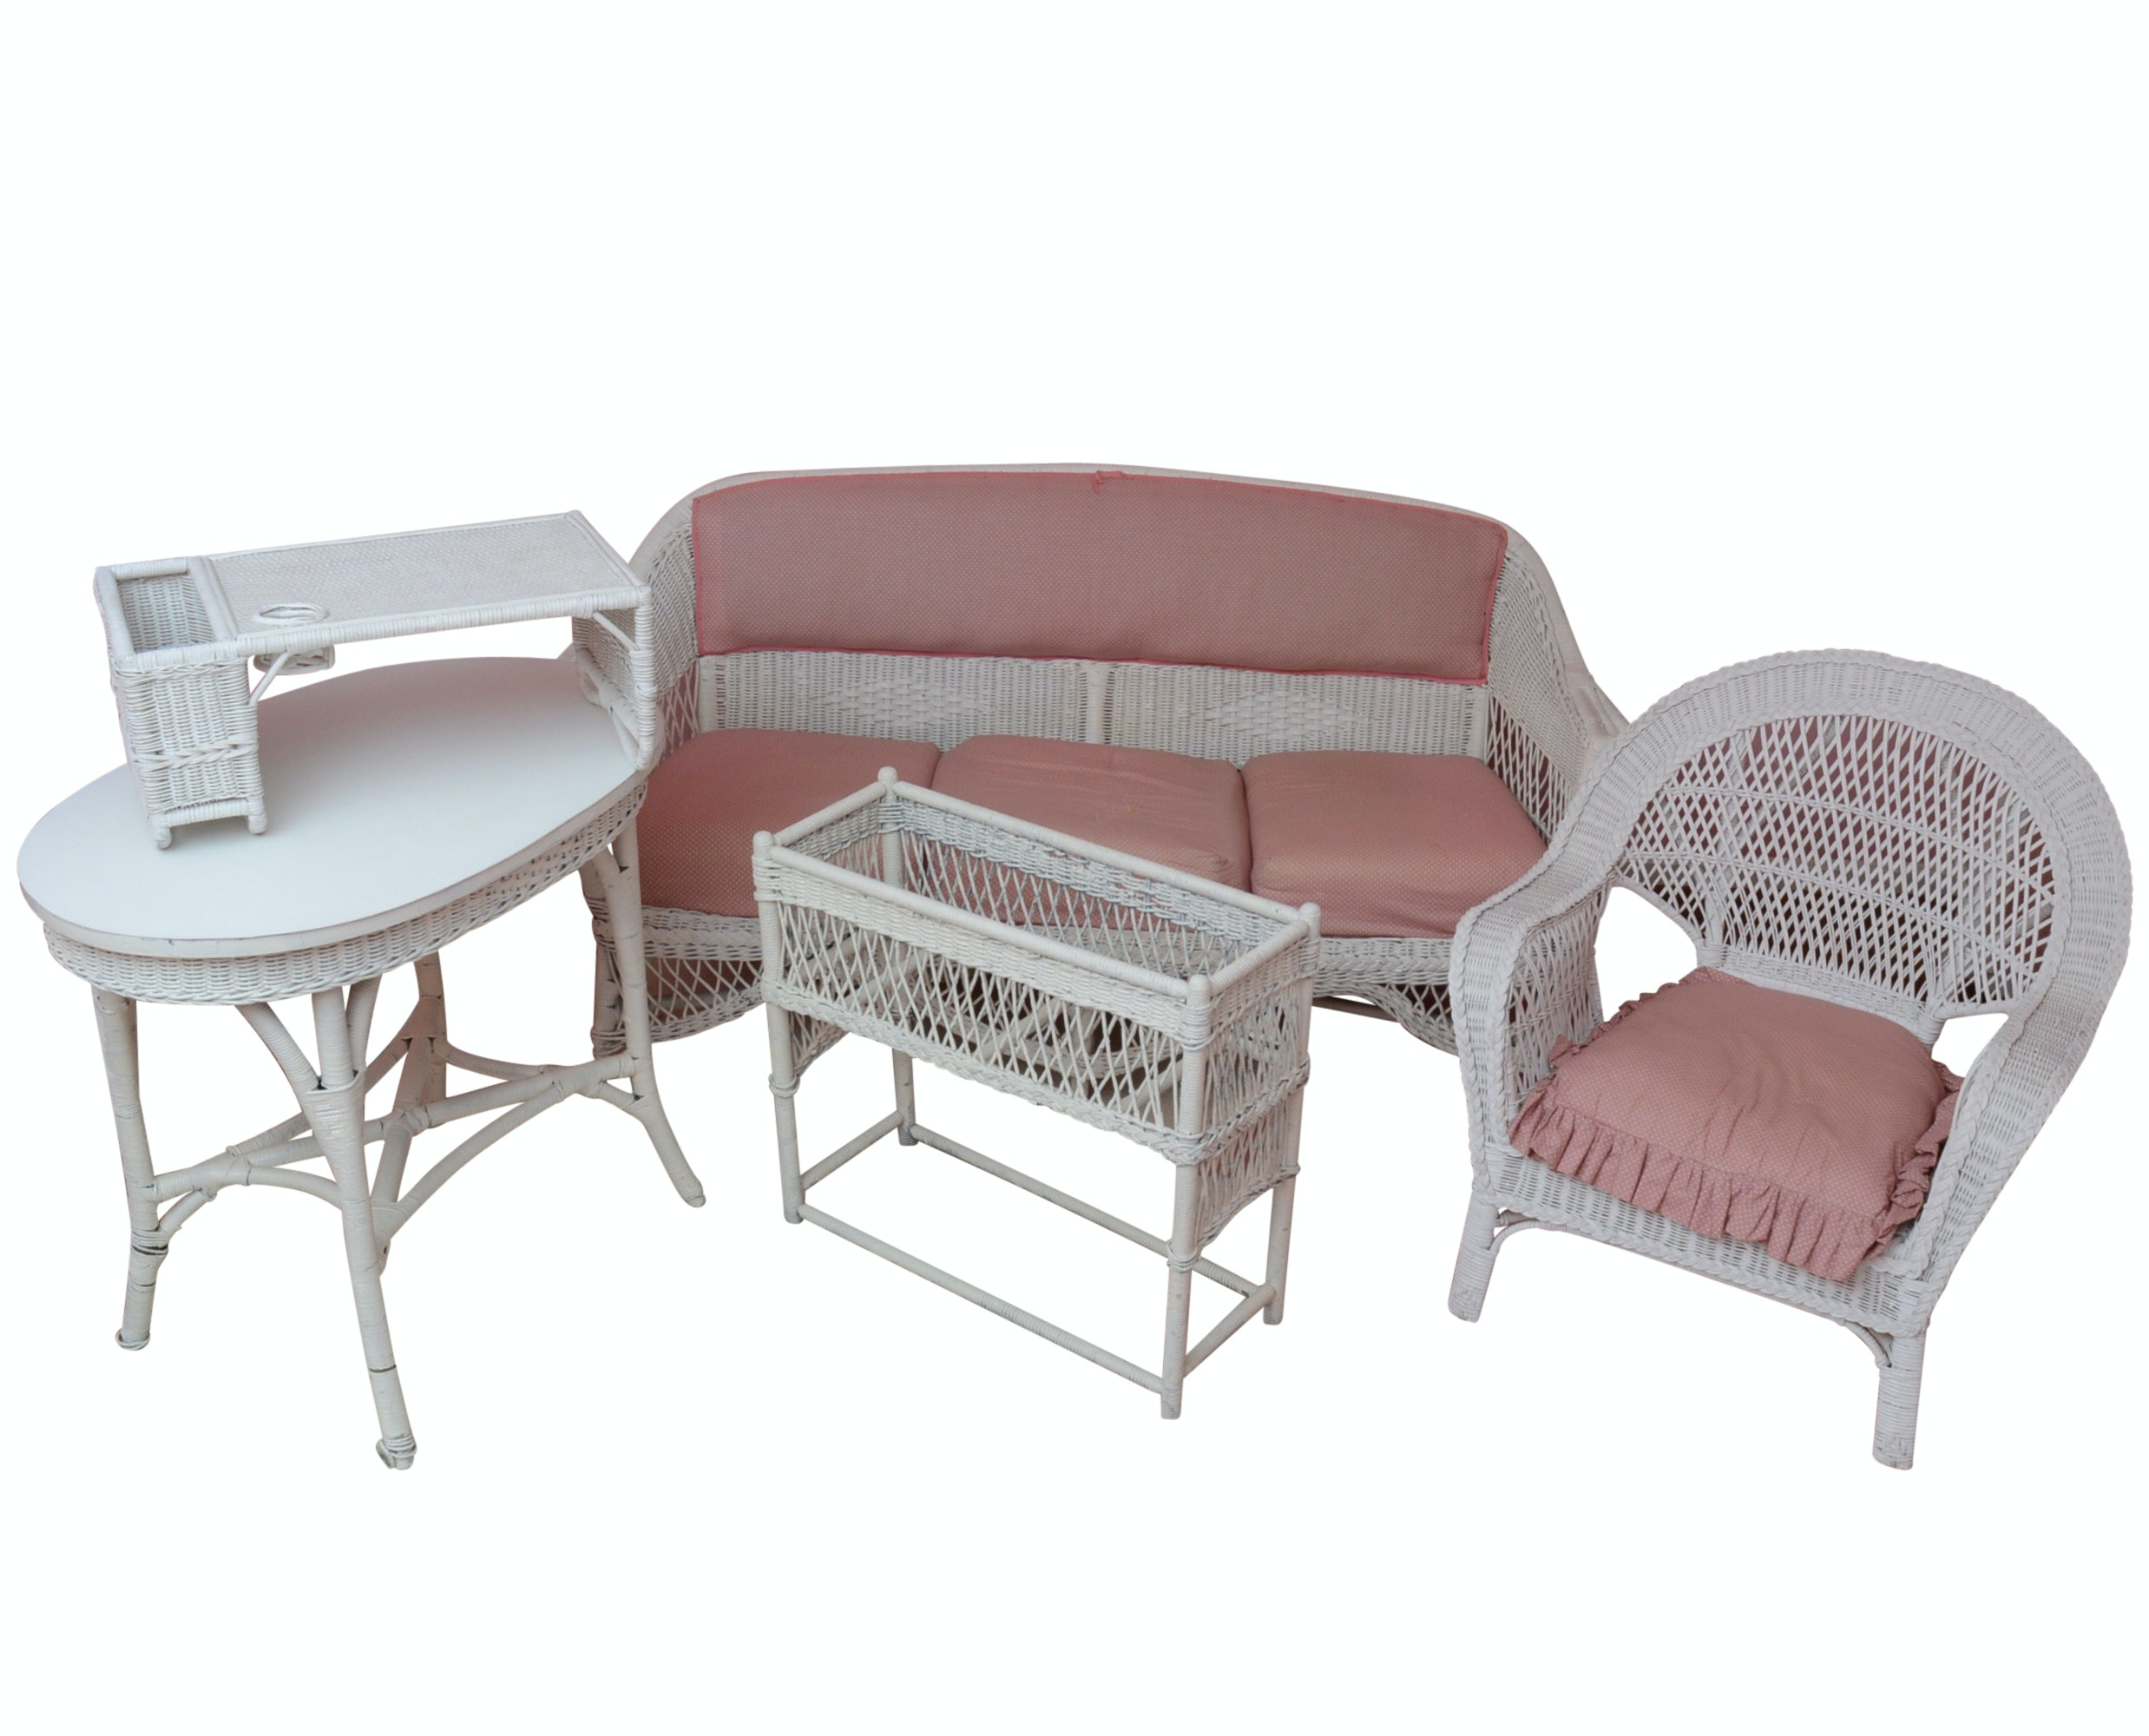 Four Piece Wicker Set with Bed Tray